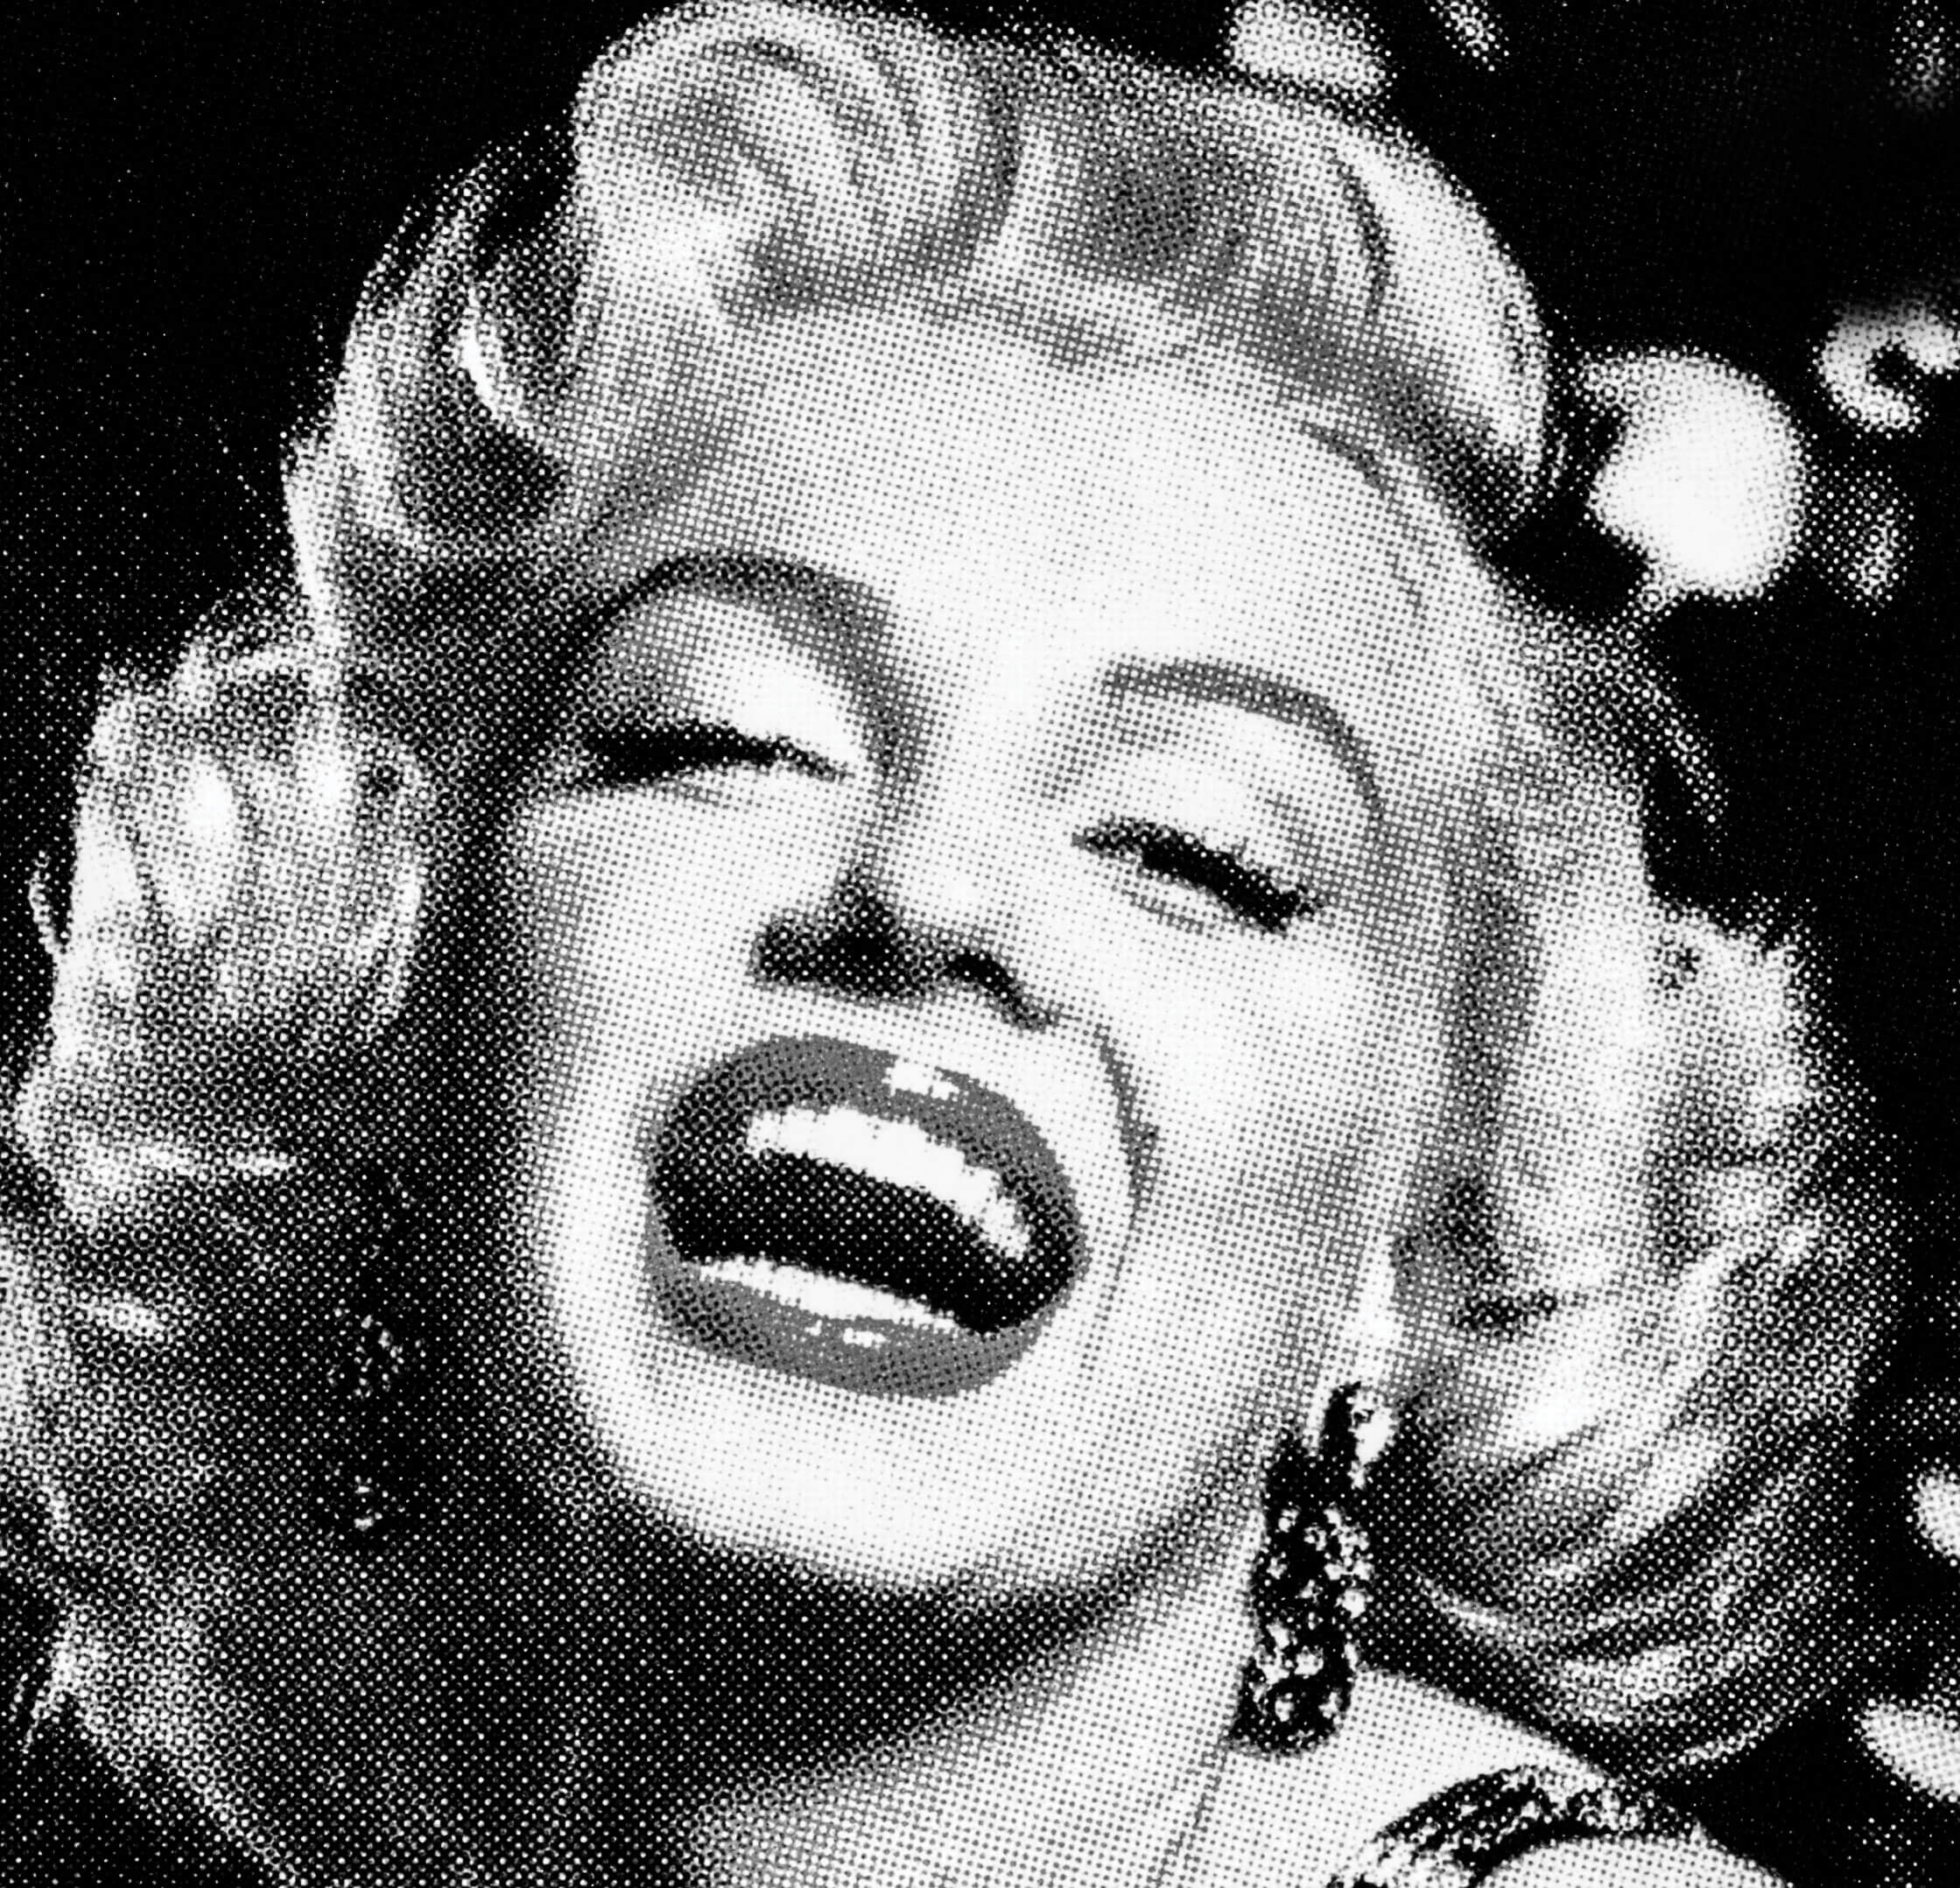 MARILYN MONROE TURNS 90